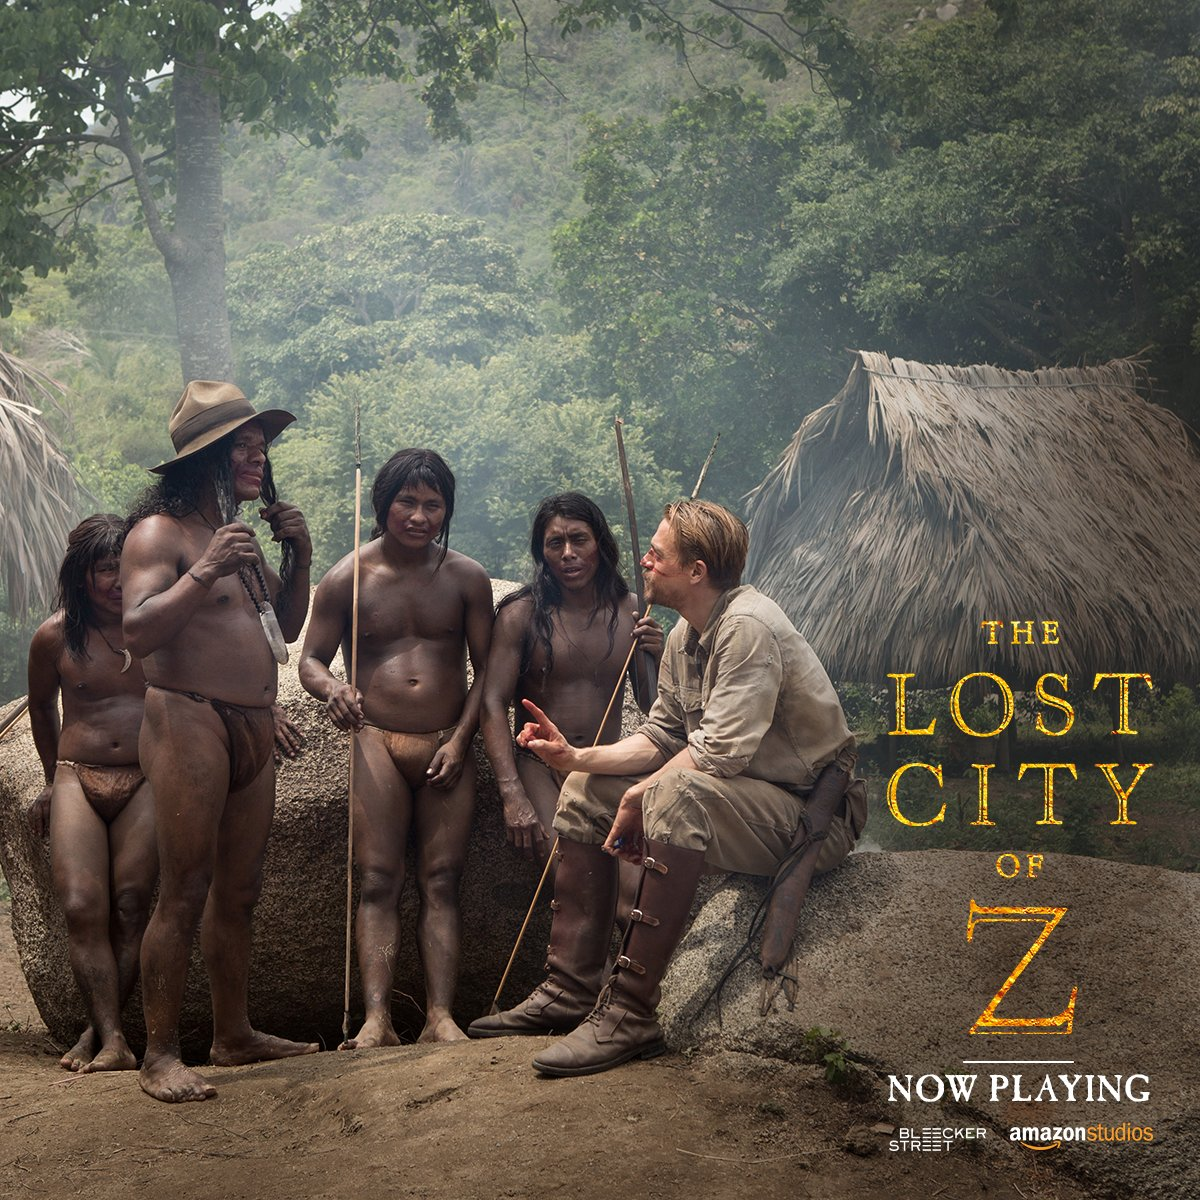 The Lost City of Z released today in cinema hall near you